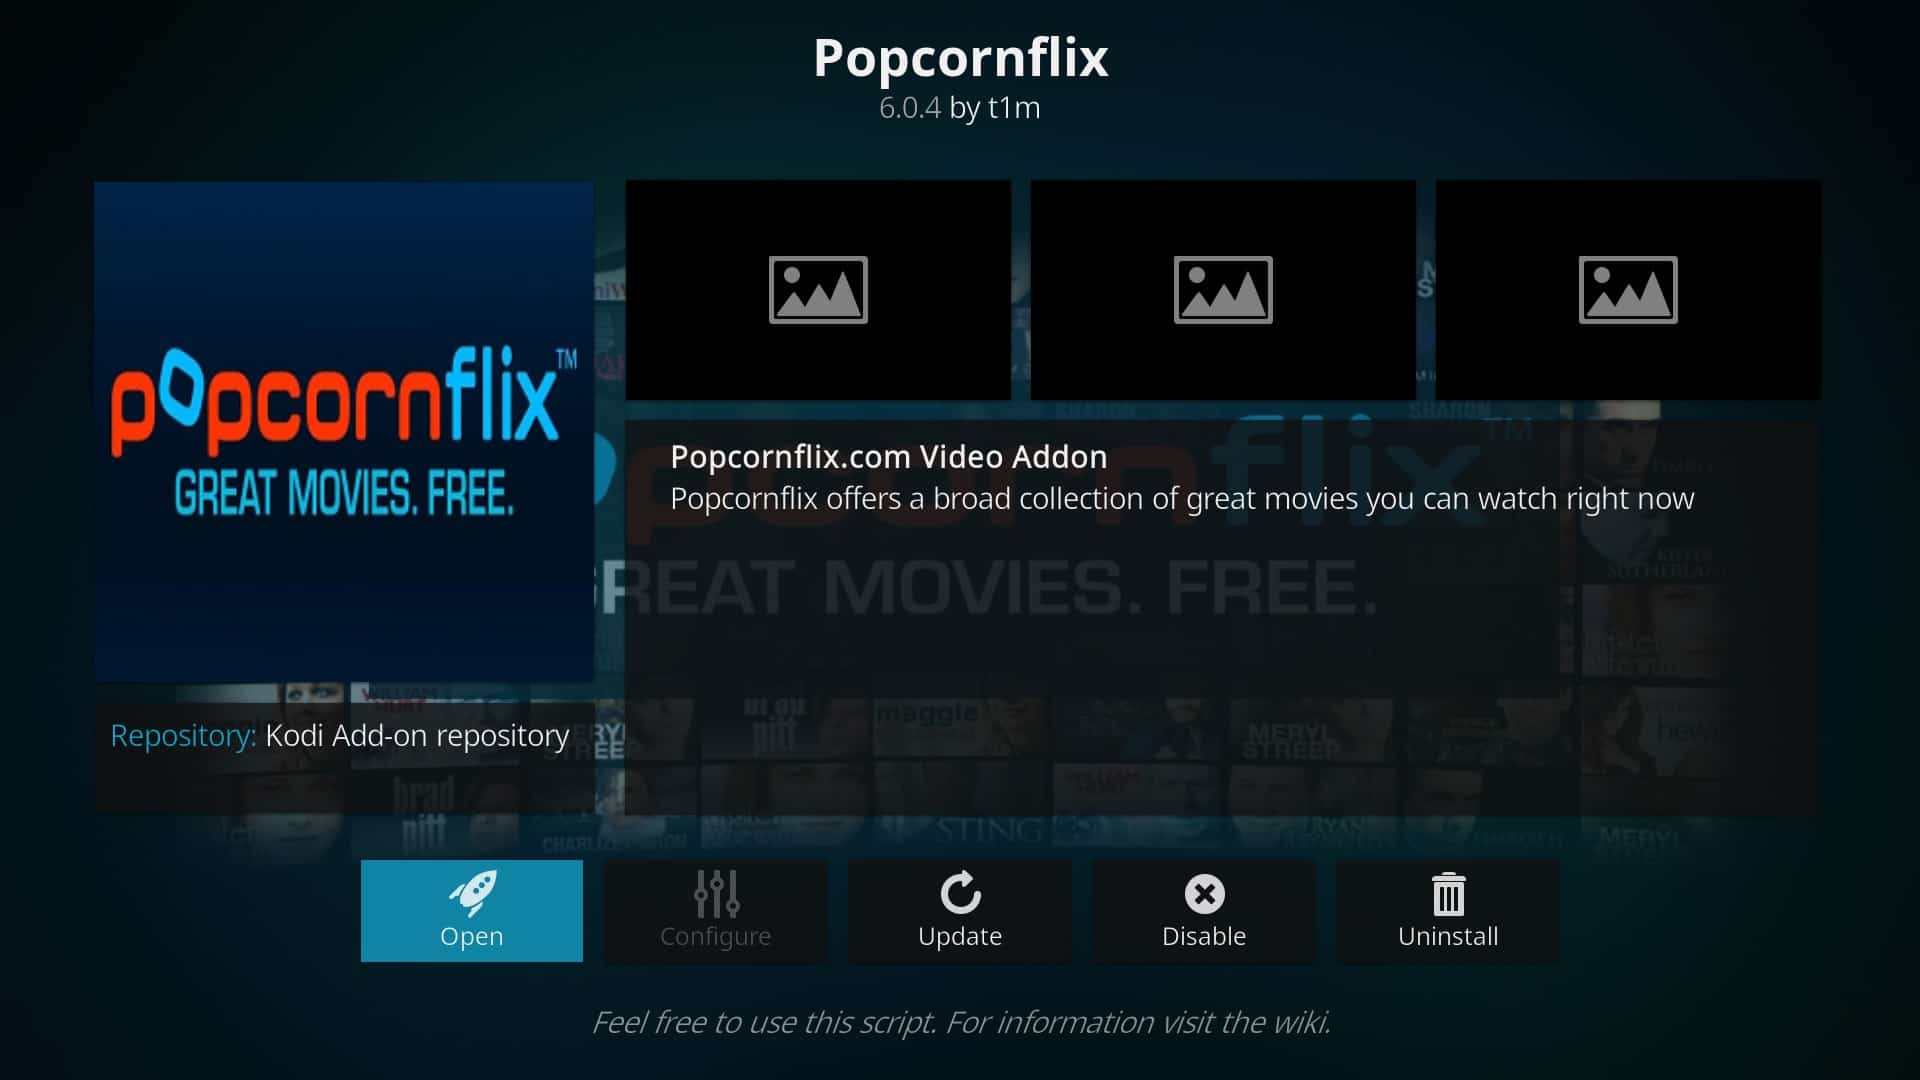 Popcornflix Is An Ad Supported Streaming Tv Service Which Is Mainly Focused On Movies And Tv Shows If You Use The Platforms Service Through The Kodi Addon